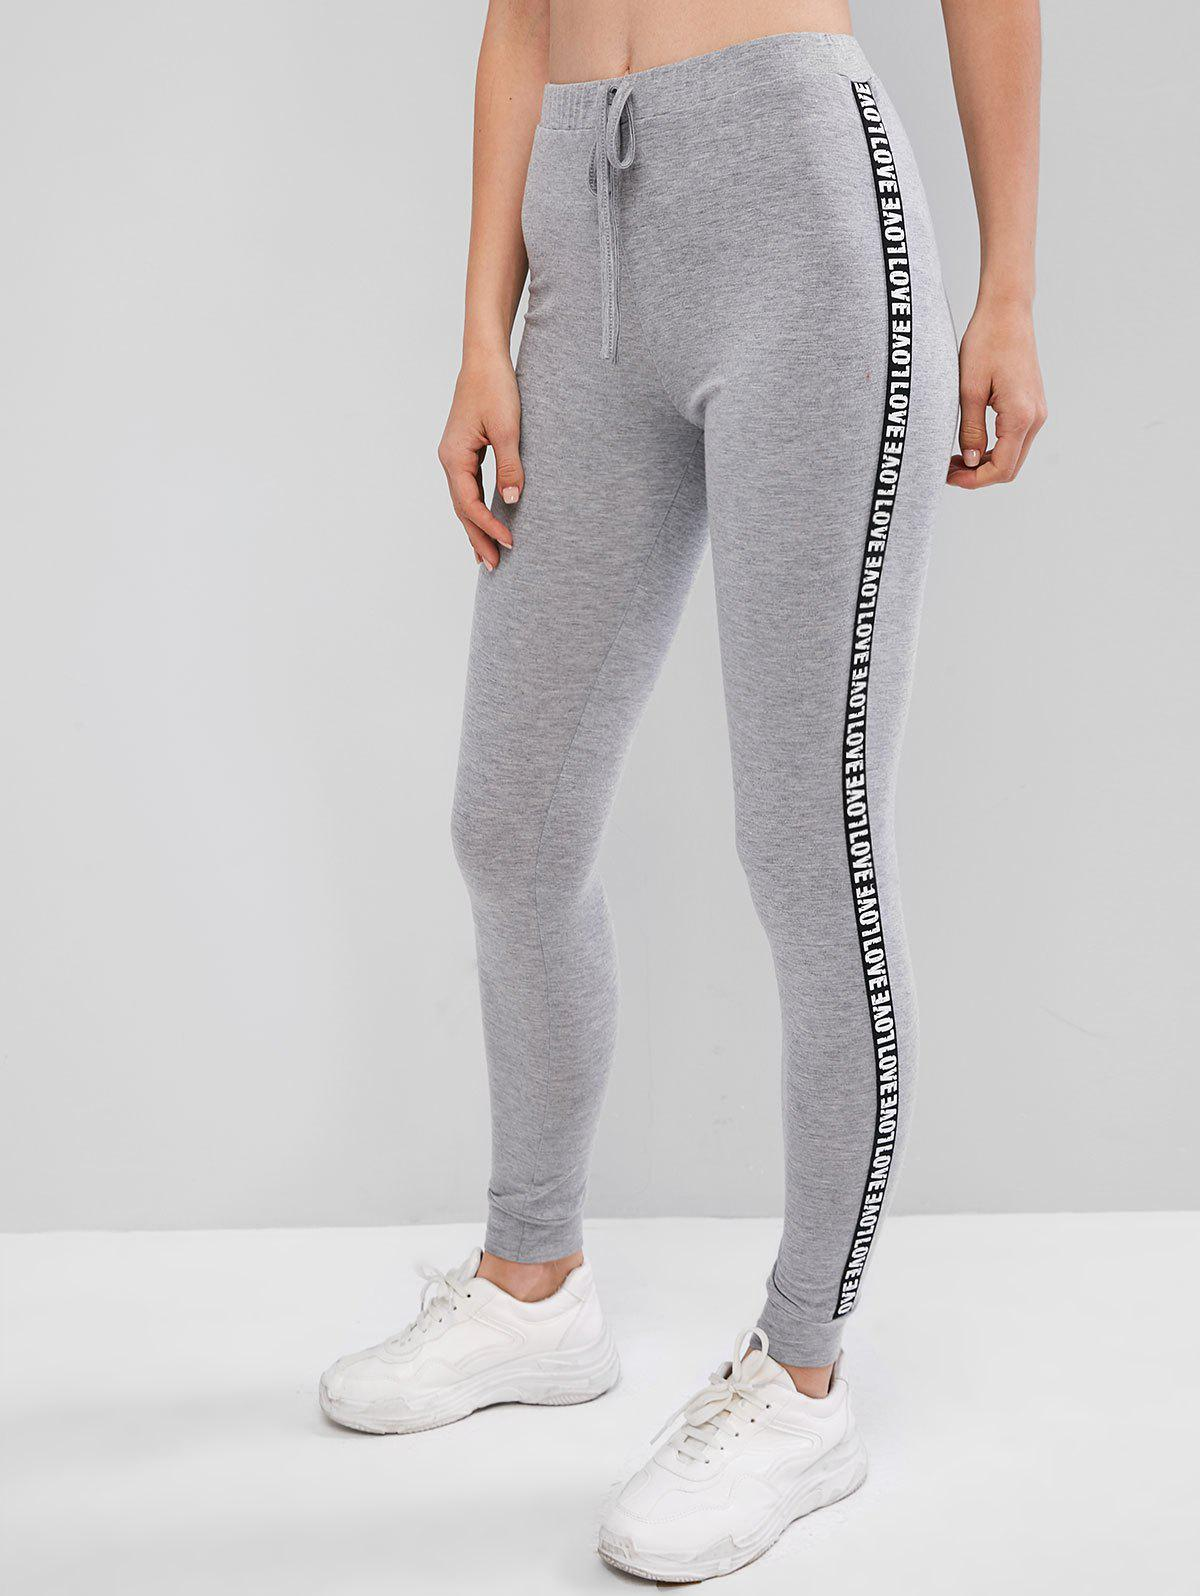 Letter Patched Heathered High Waist Leggings - GRAY CLOUD L